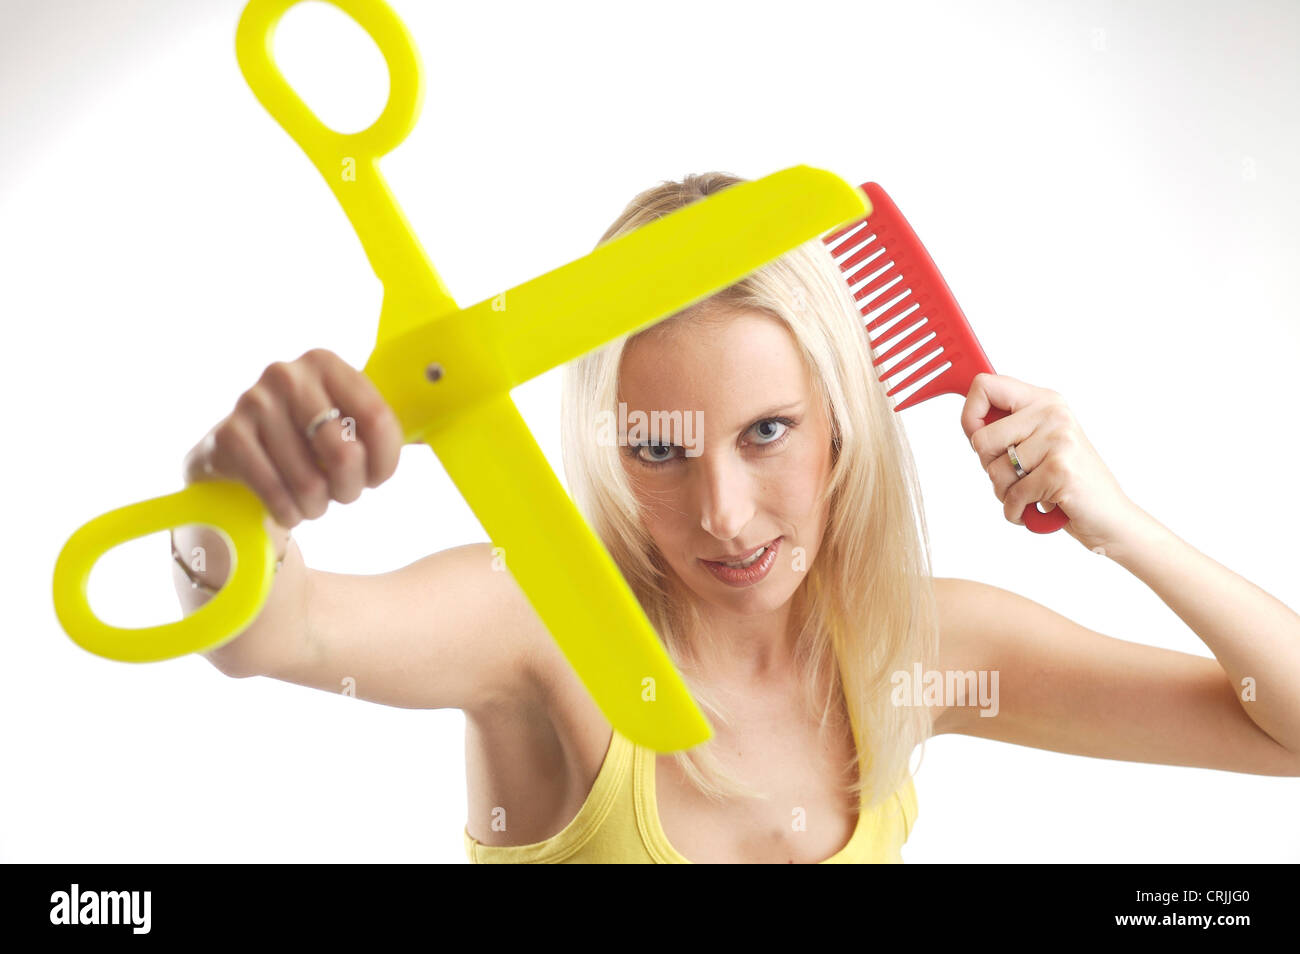 blond young woman with oversize comb and a pair of scissors - Stock Image